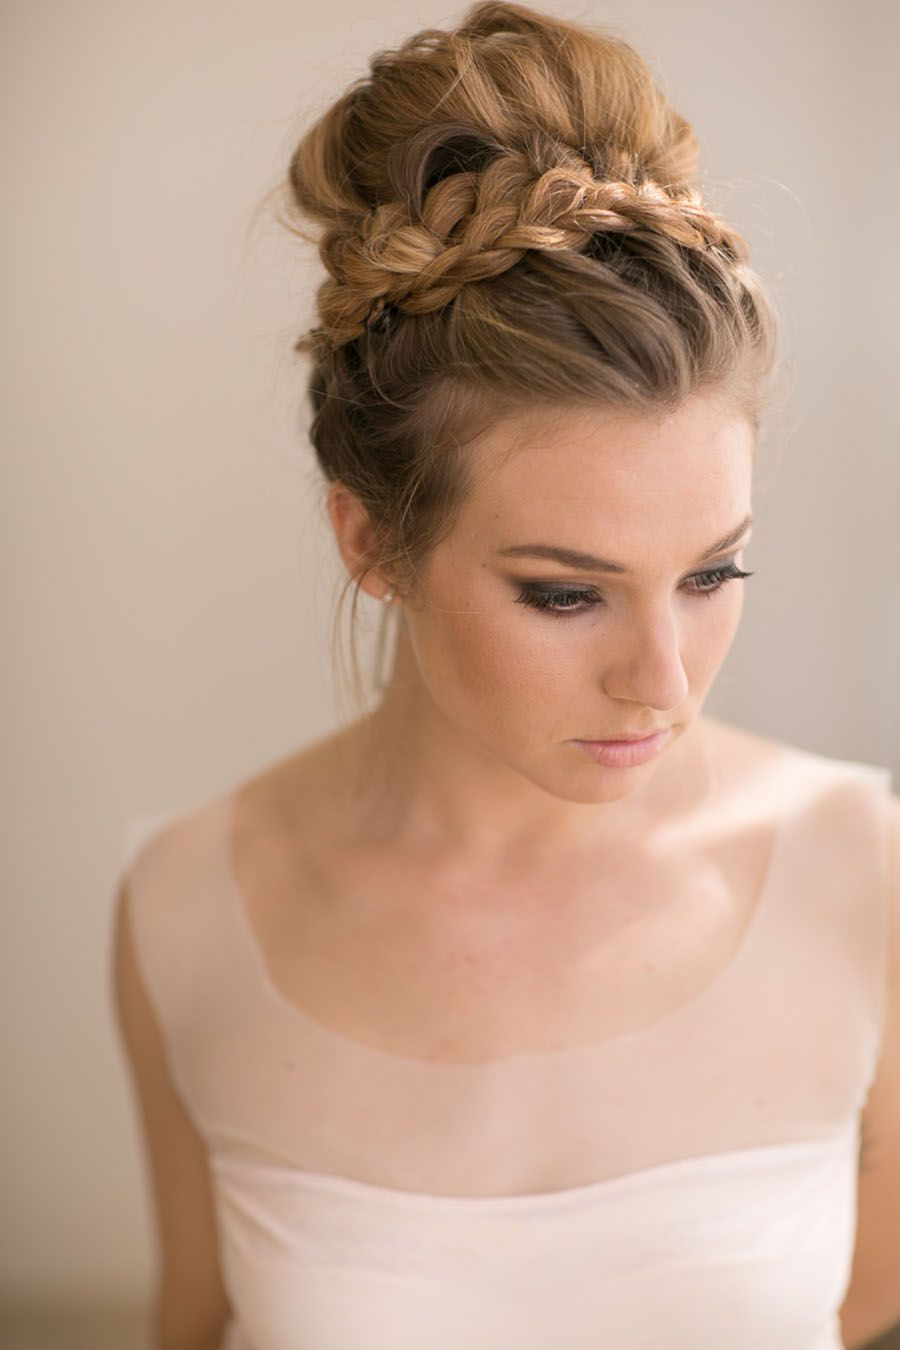 Dance with me balletinspired wedding moodboard beautiful updo